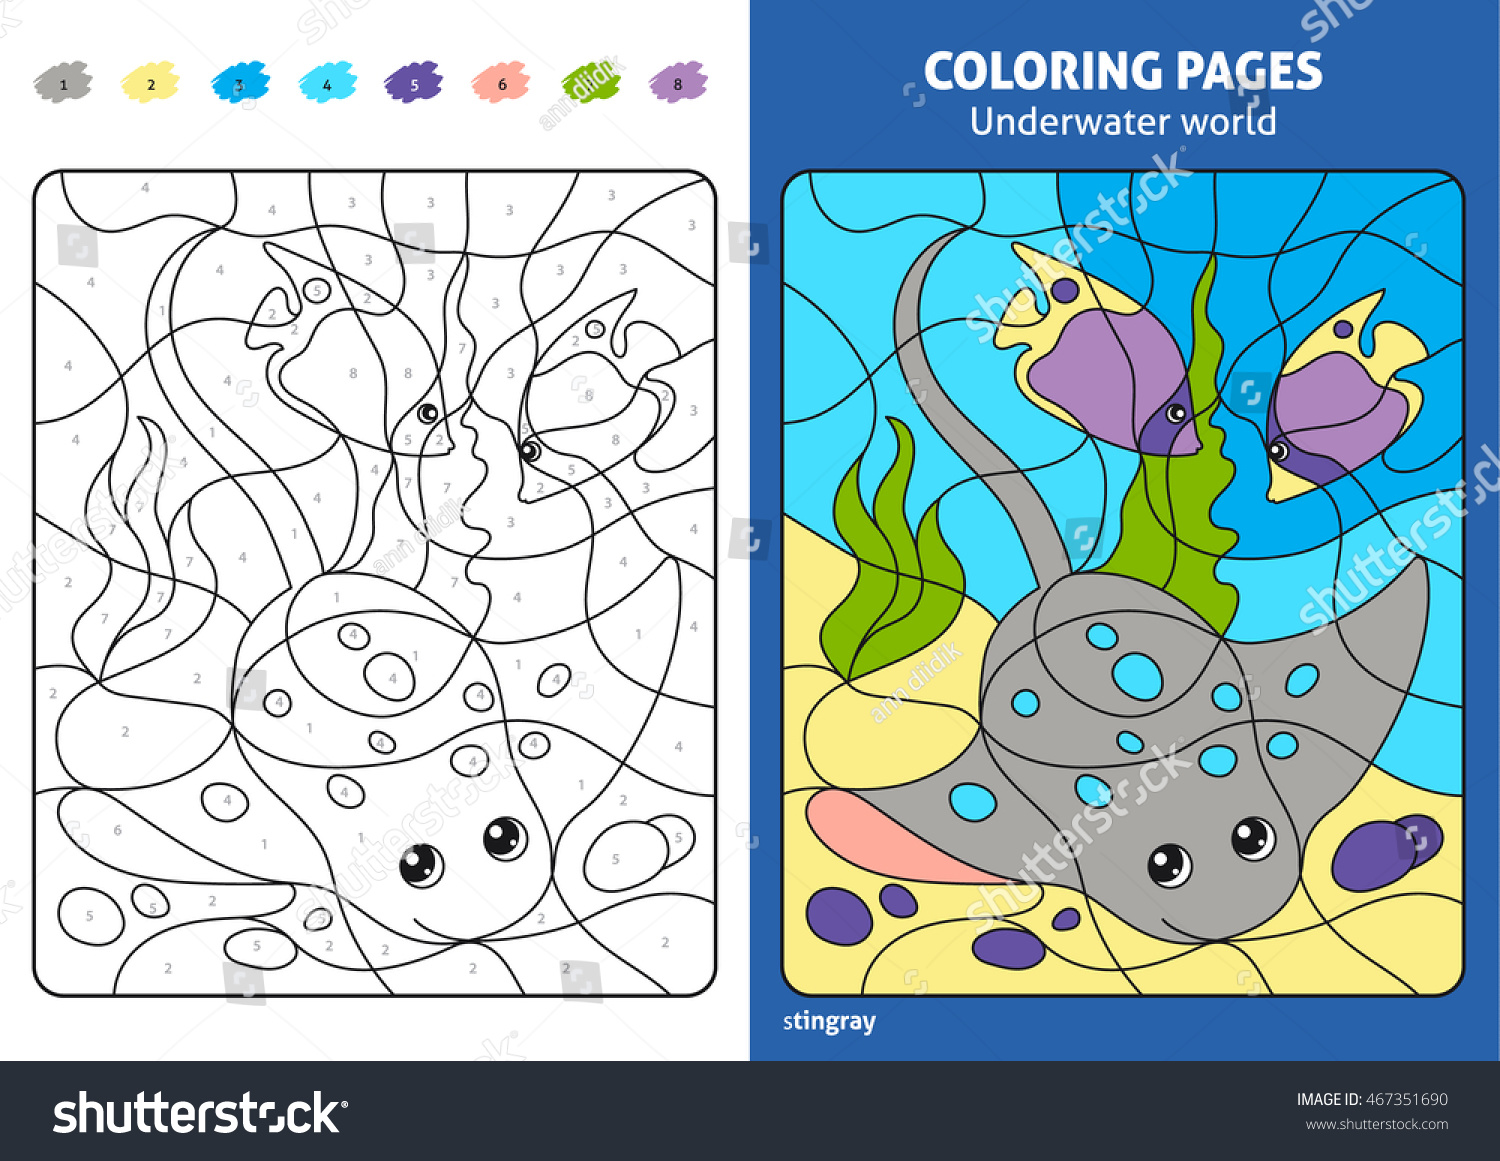 Underwater World Coloring Page Kids Stingray Stock Vector (Royalty ...